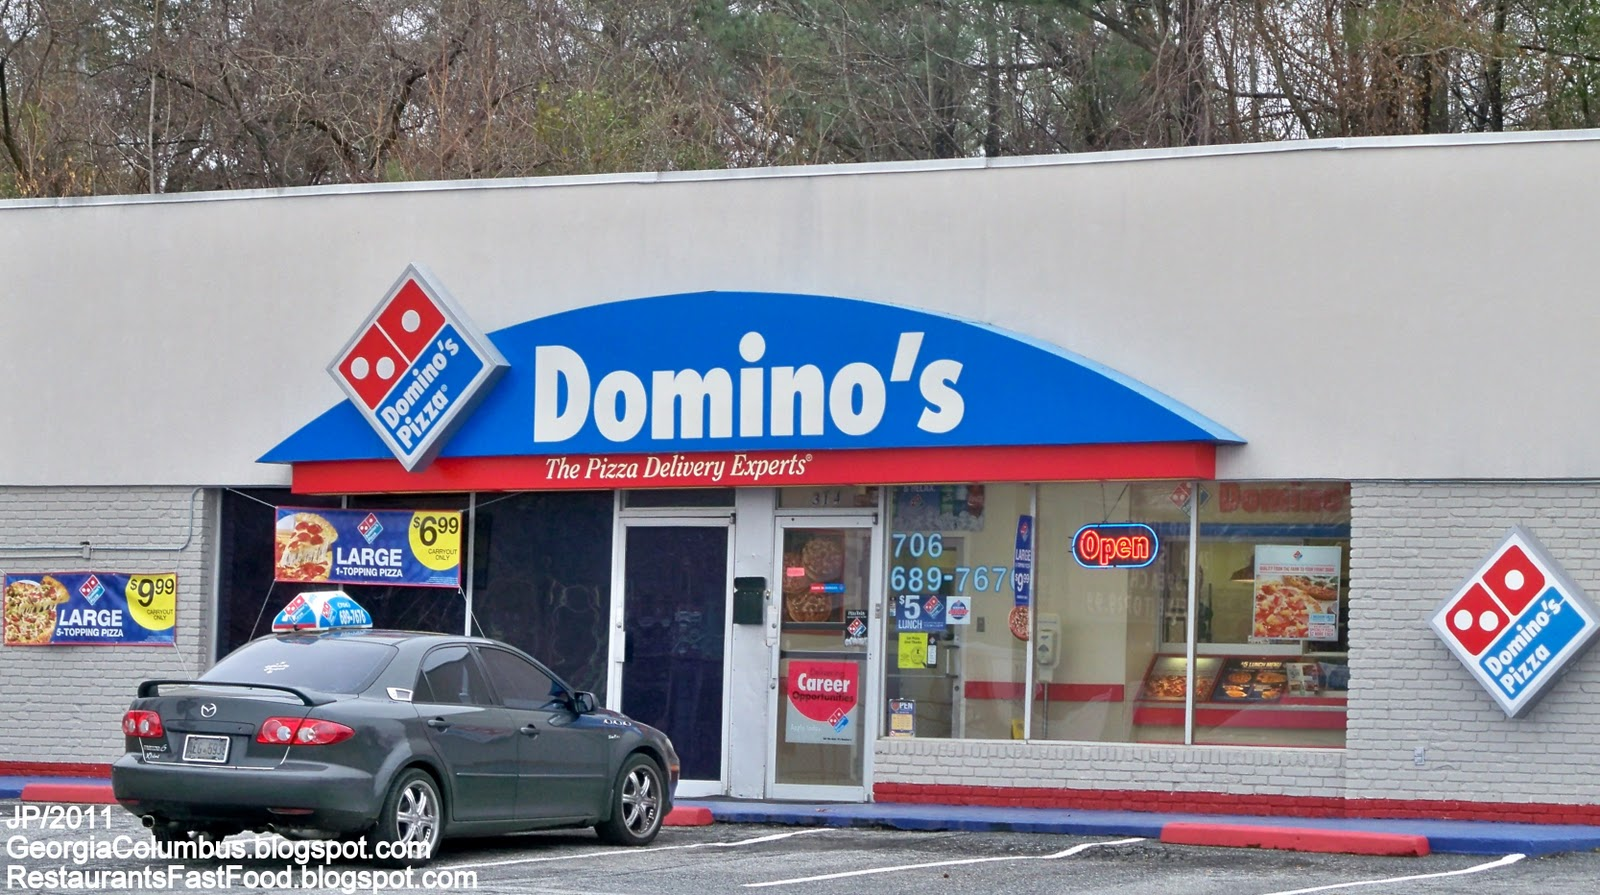 restaurant fast food menu mcdonald s dq bk hamburger pizza mexican domino s pizza columbus farr road domino s pizza delivery restaurant farr road columbus ga